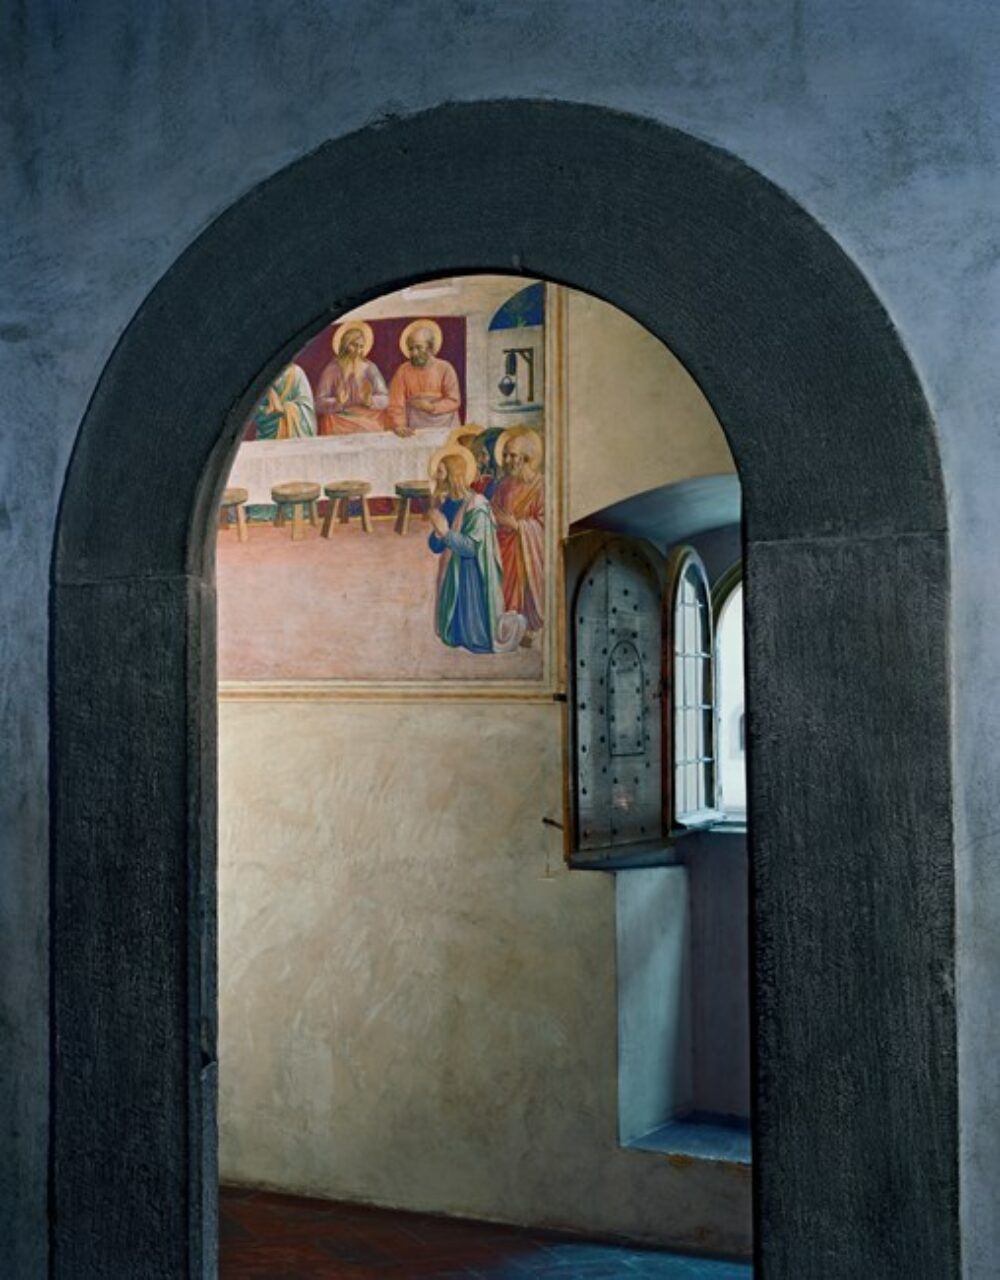 The Last Supper, or Communion of the Apostles by Fra Angelico, Cell 35, Museum of San Marco Convent, Florence, Italy